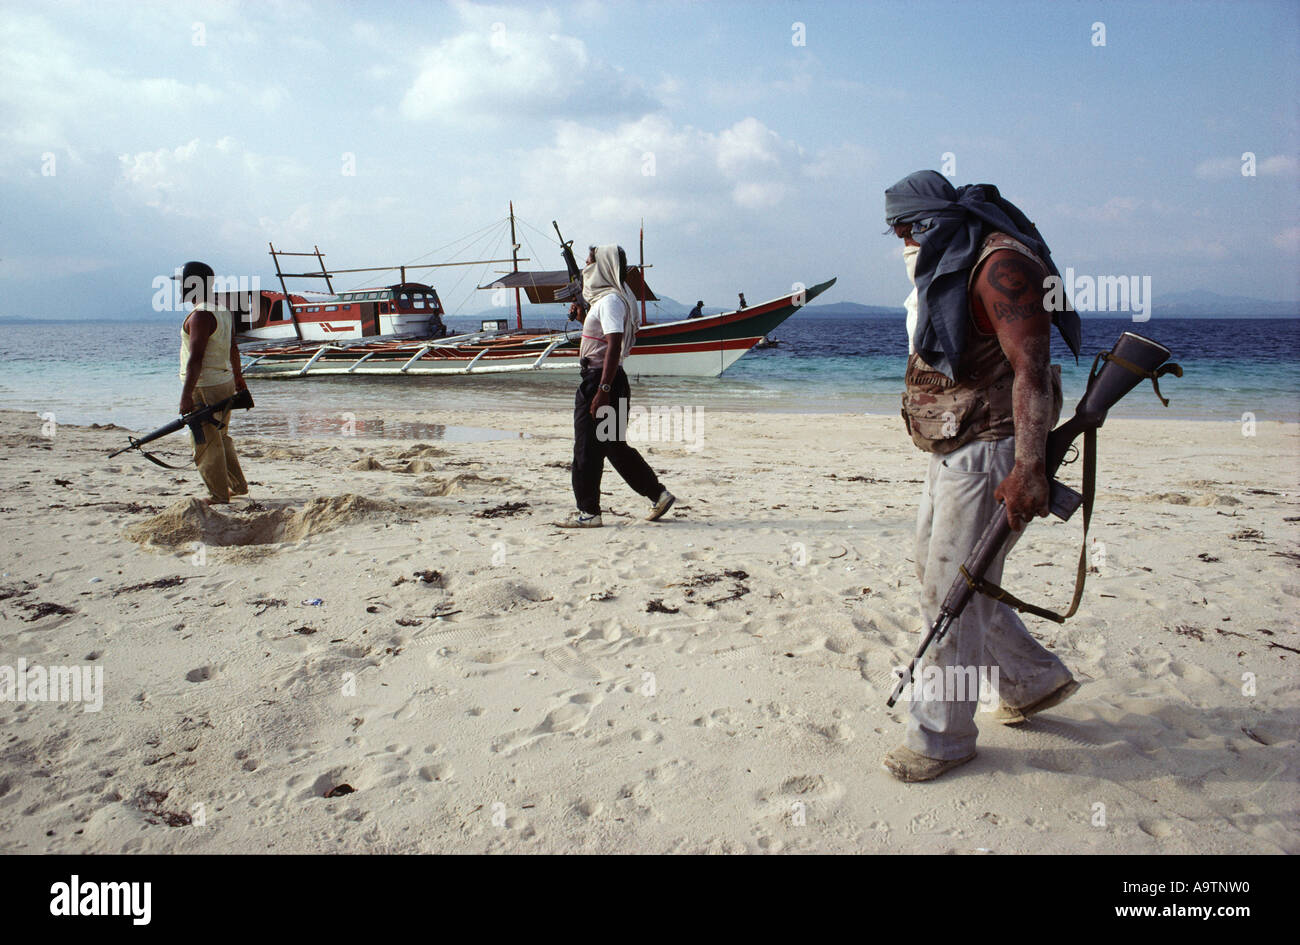 The pirate crew walking along the beach of a shallow sandbar, their boat in the background. - Stock Image